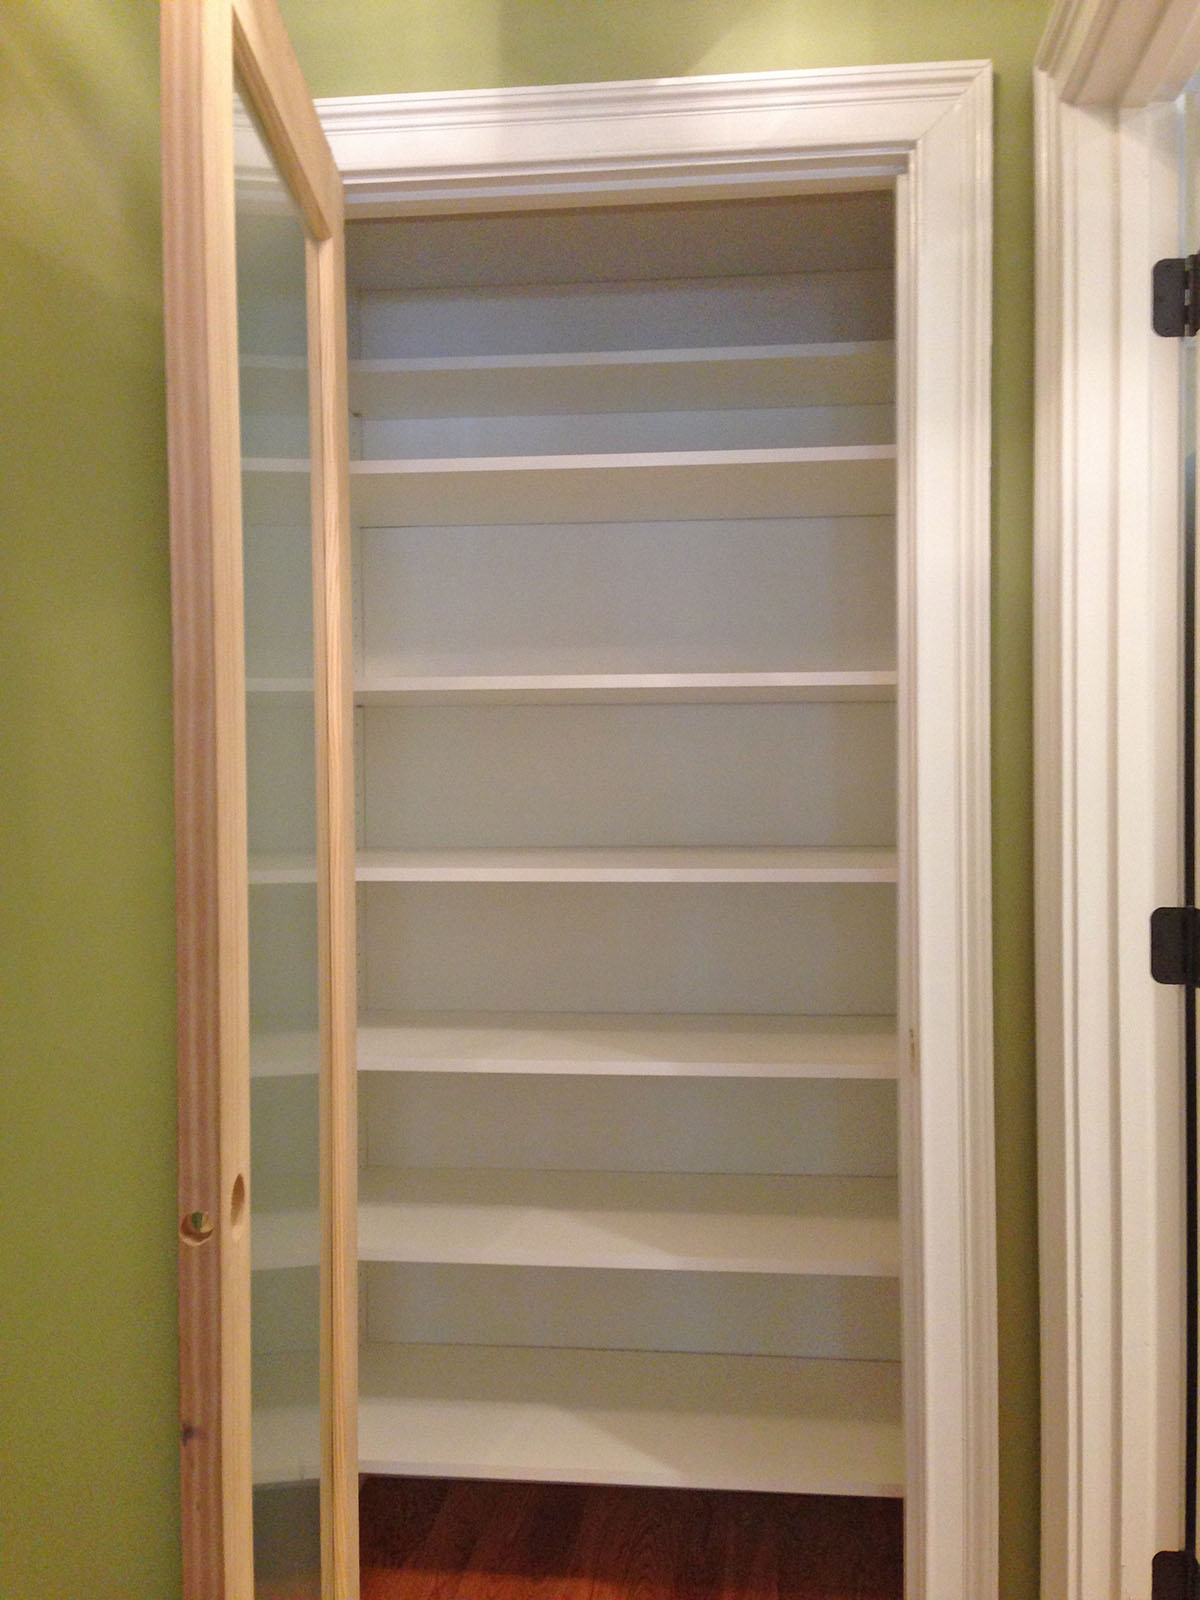 custom pantry shelves